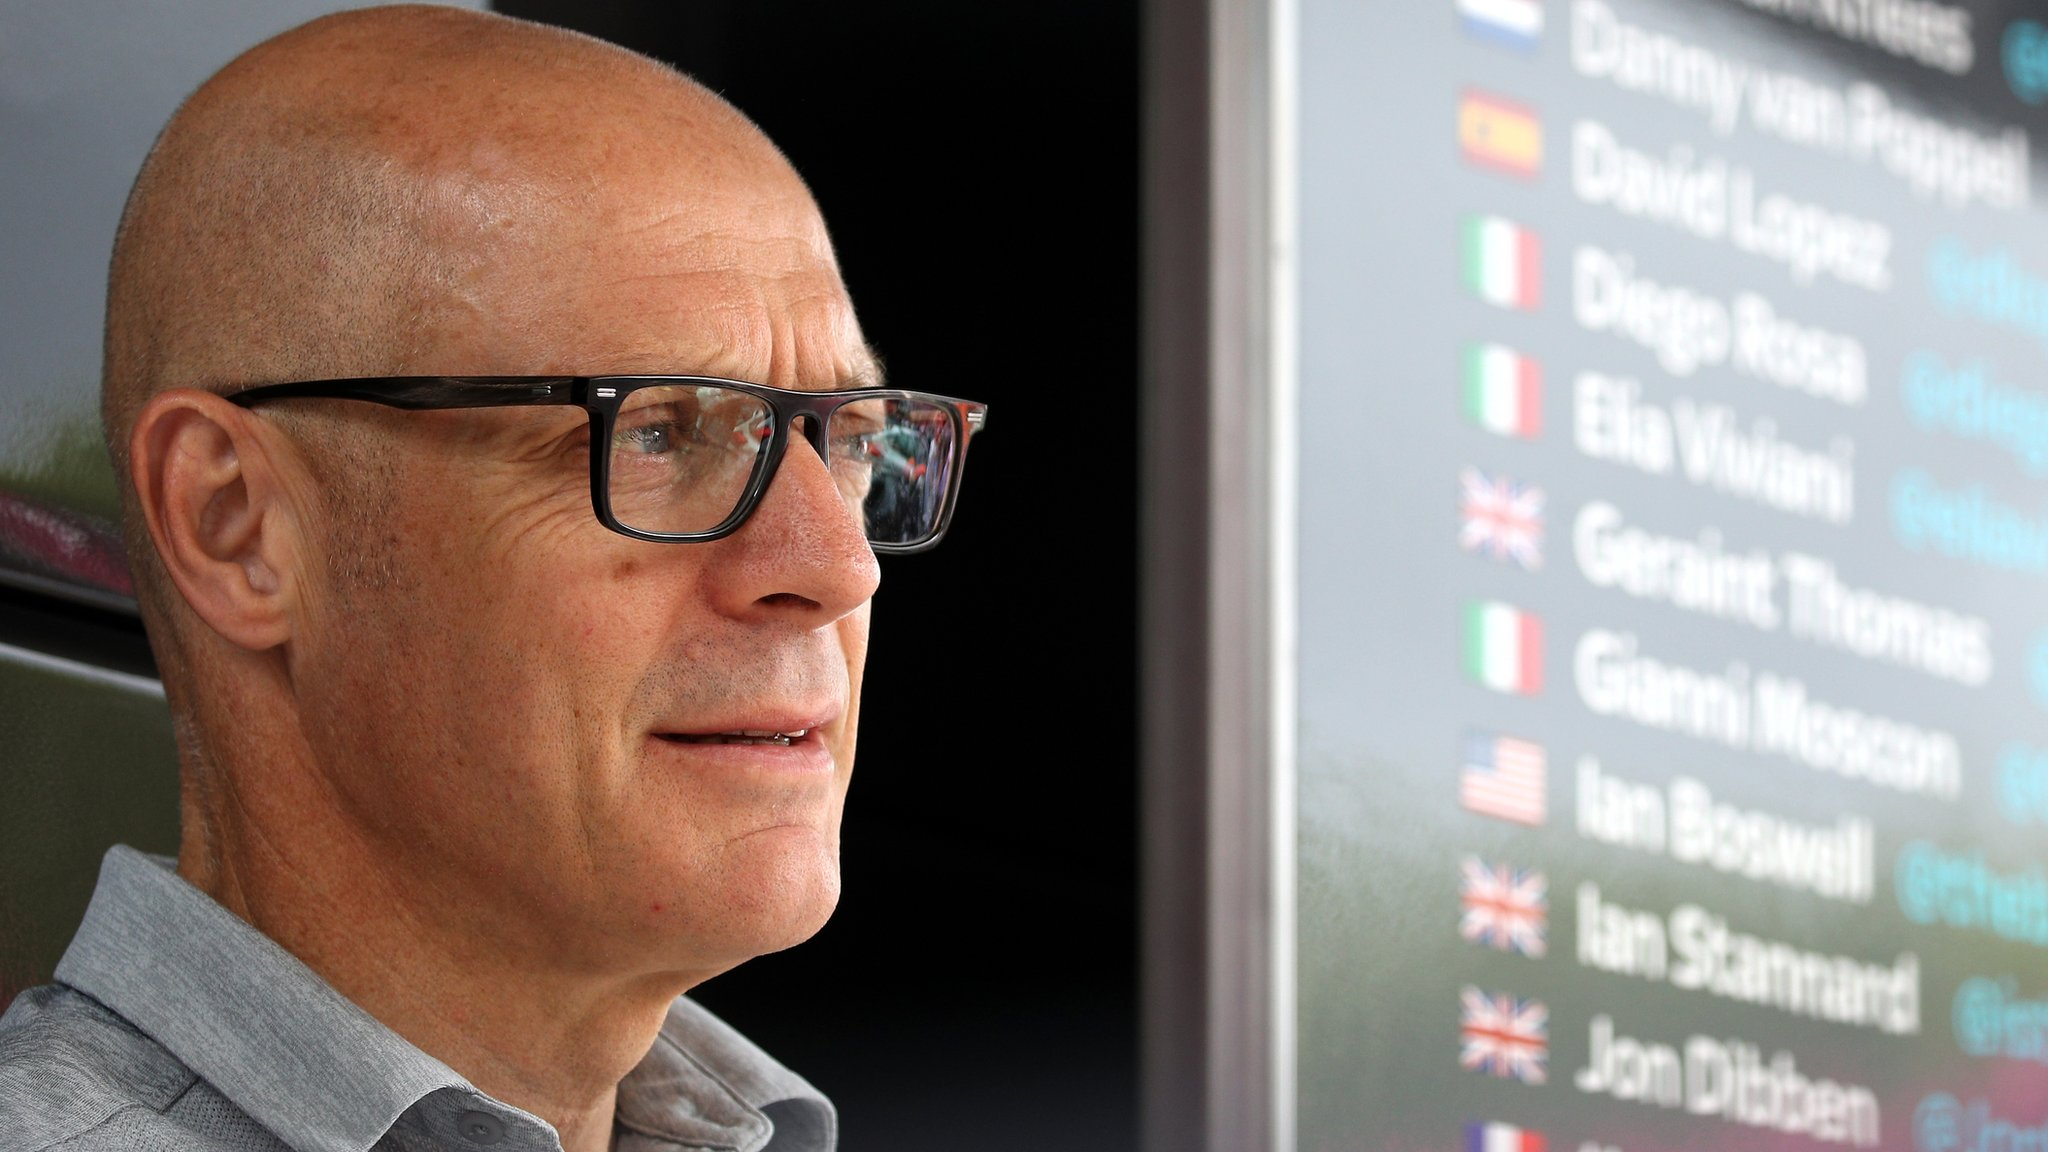 Tour de France 2017: Team Sky's Dave Brailsford 'regrets' exchange with reporter